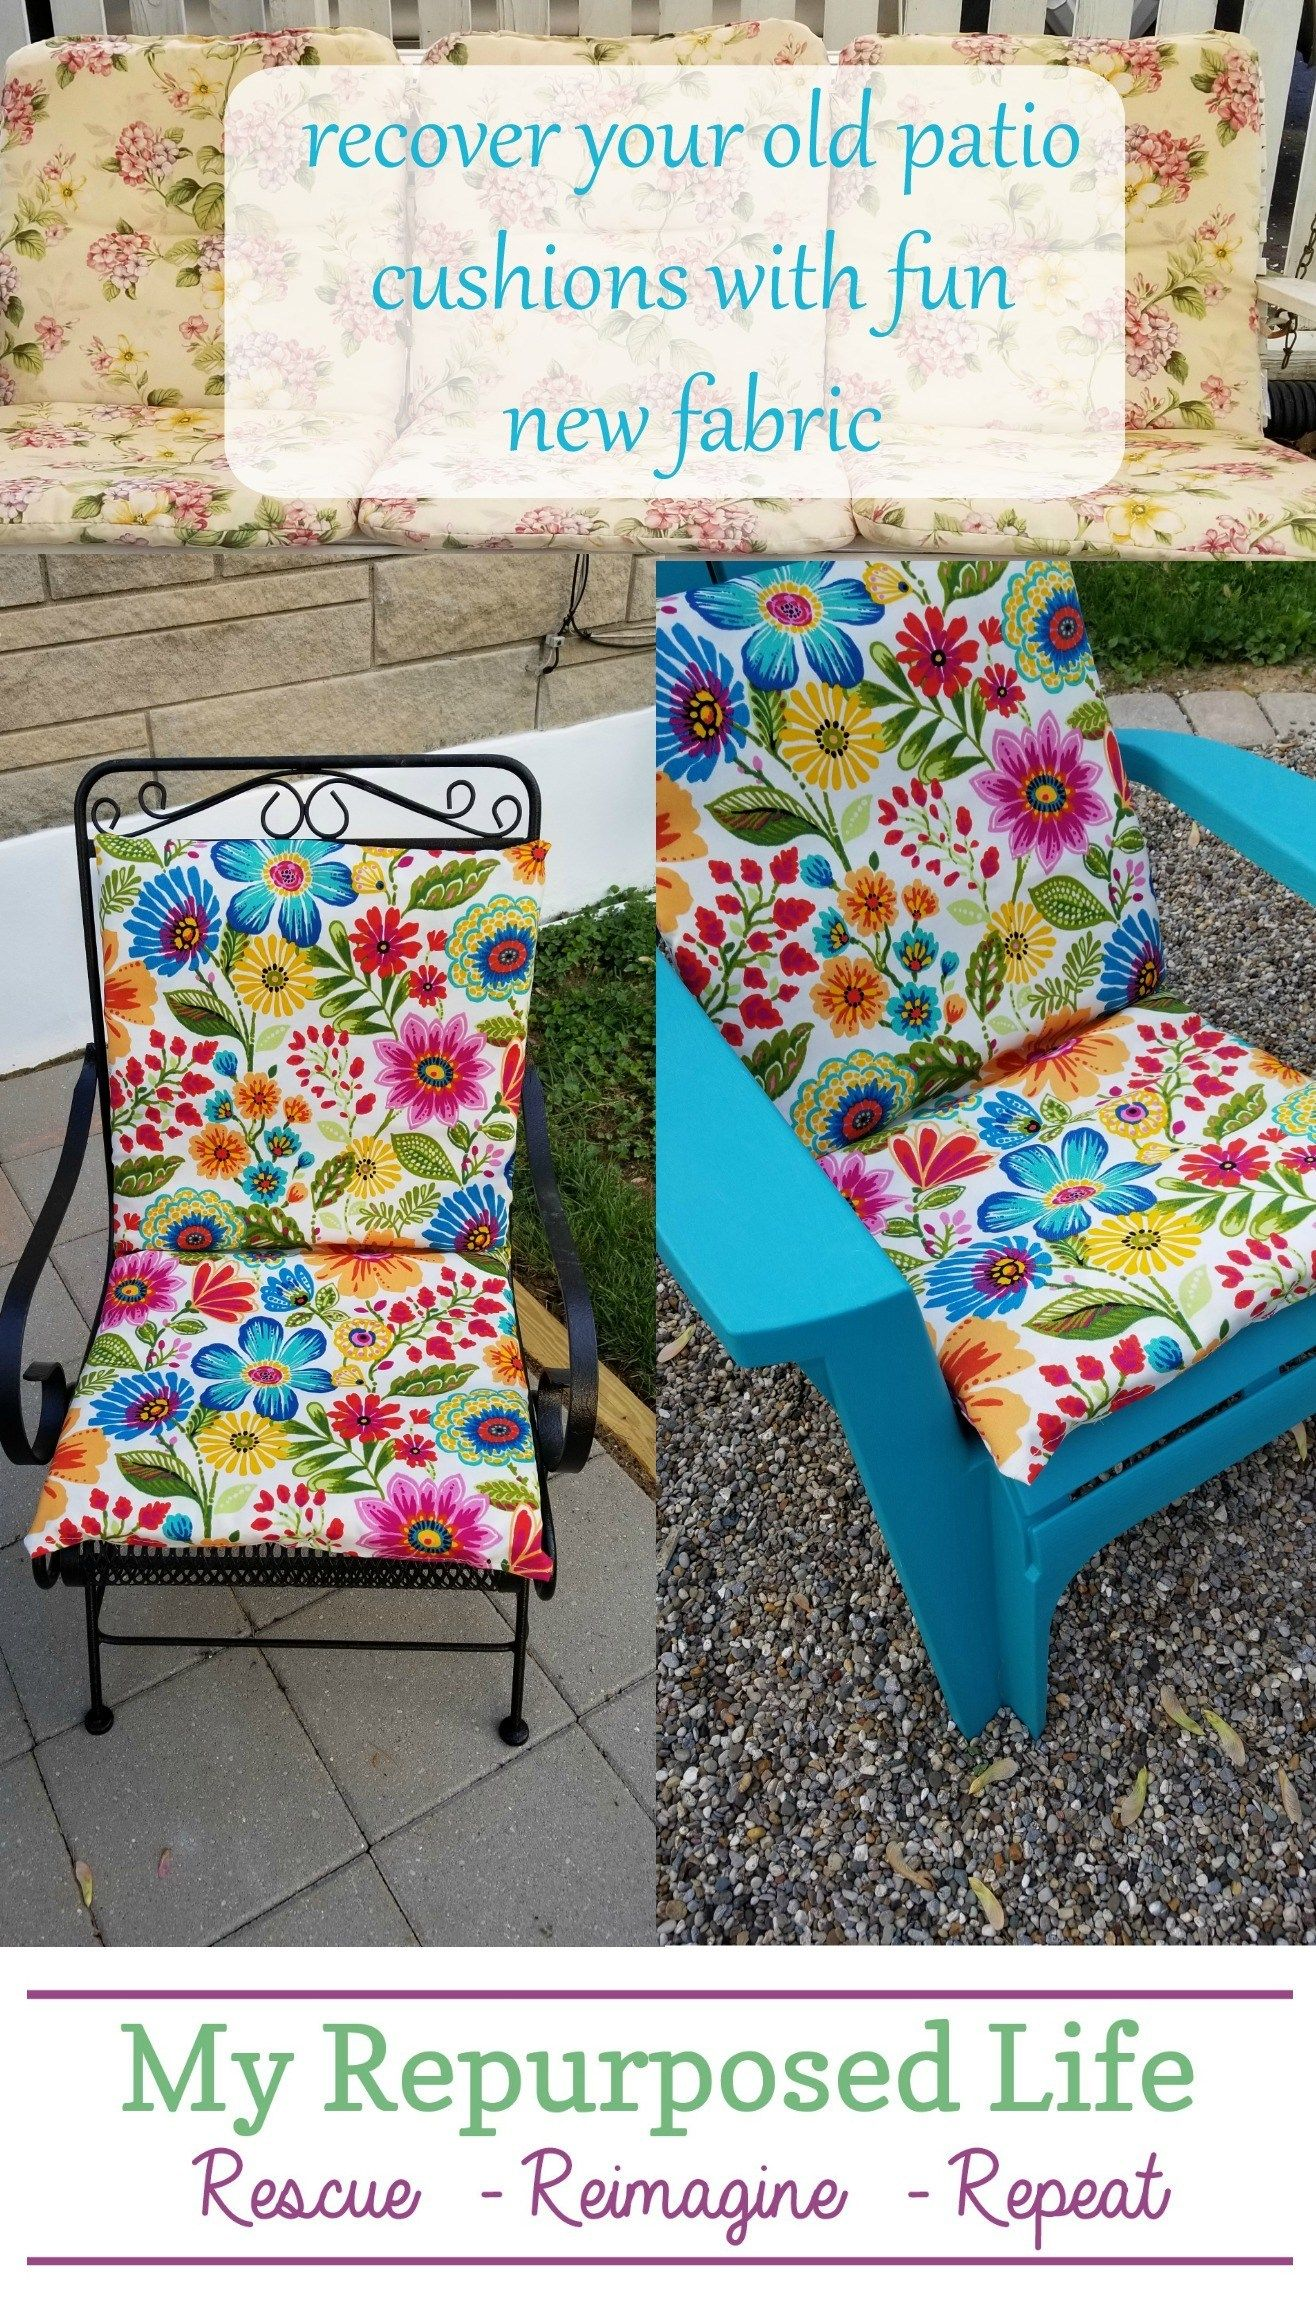 lawn chair cushions on outdoor cushion covers envelope pillow covers patio cushions outdoor cushion covers patio cushions outdoor patio cushions outdoor cushion covers